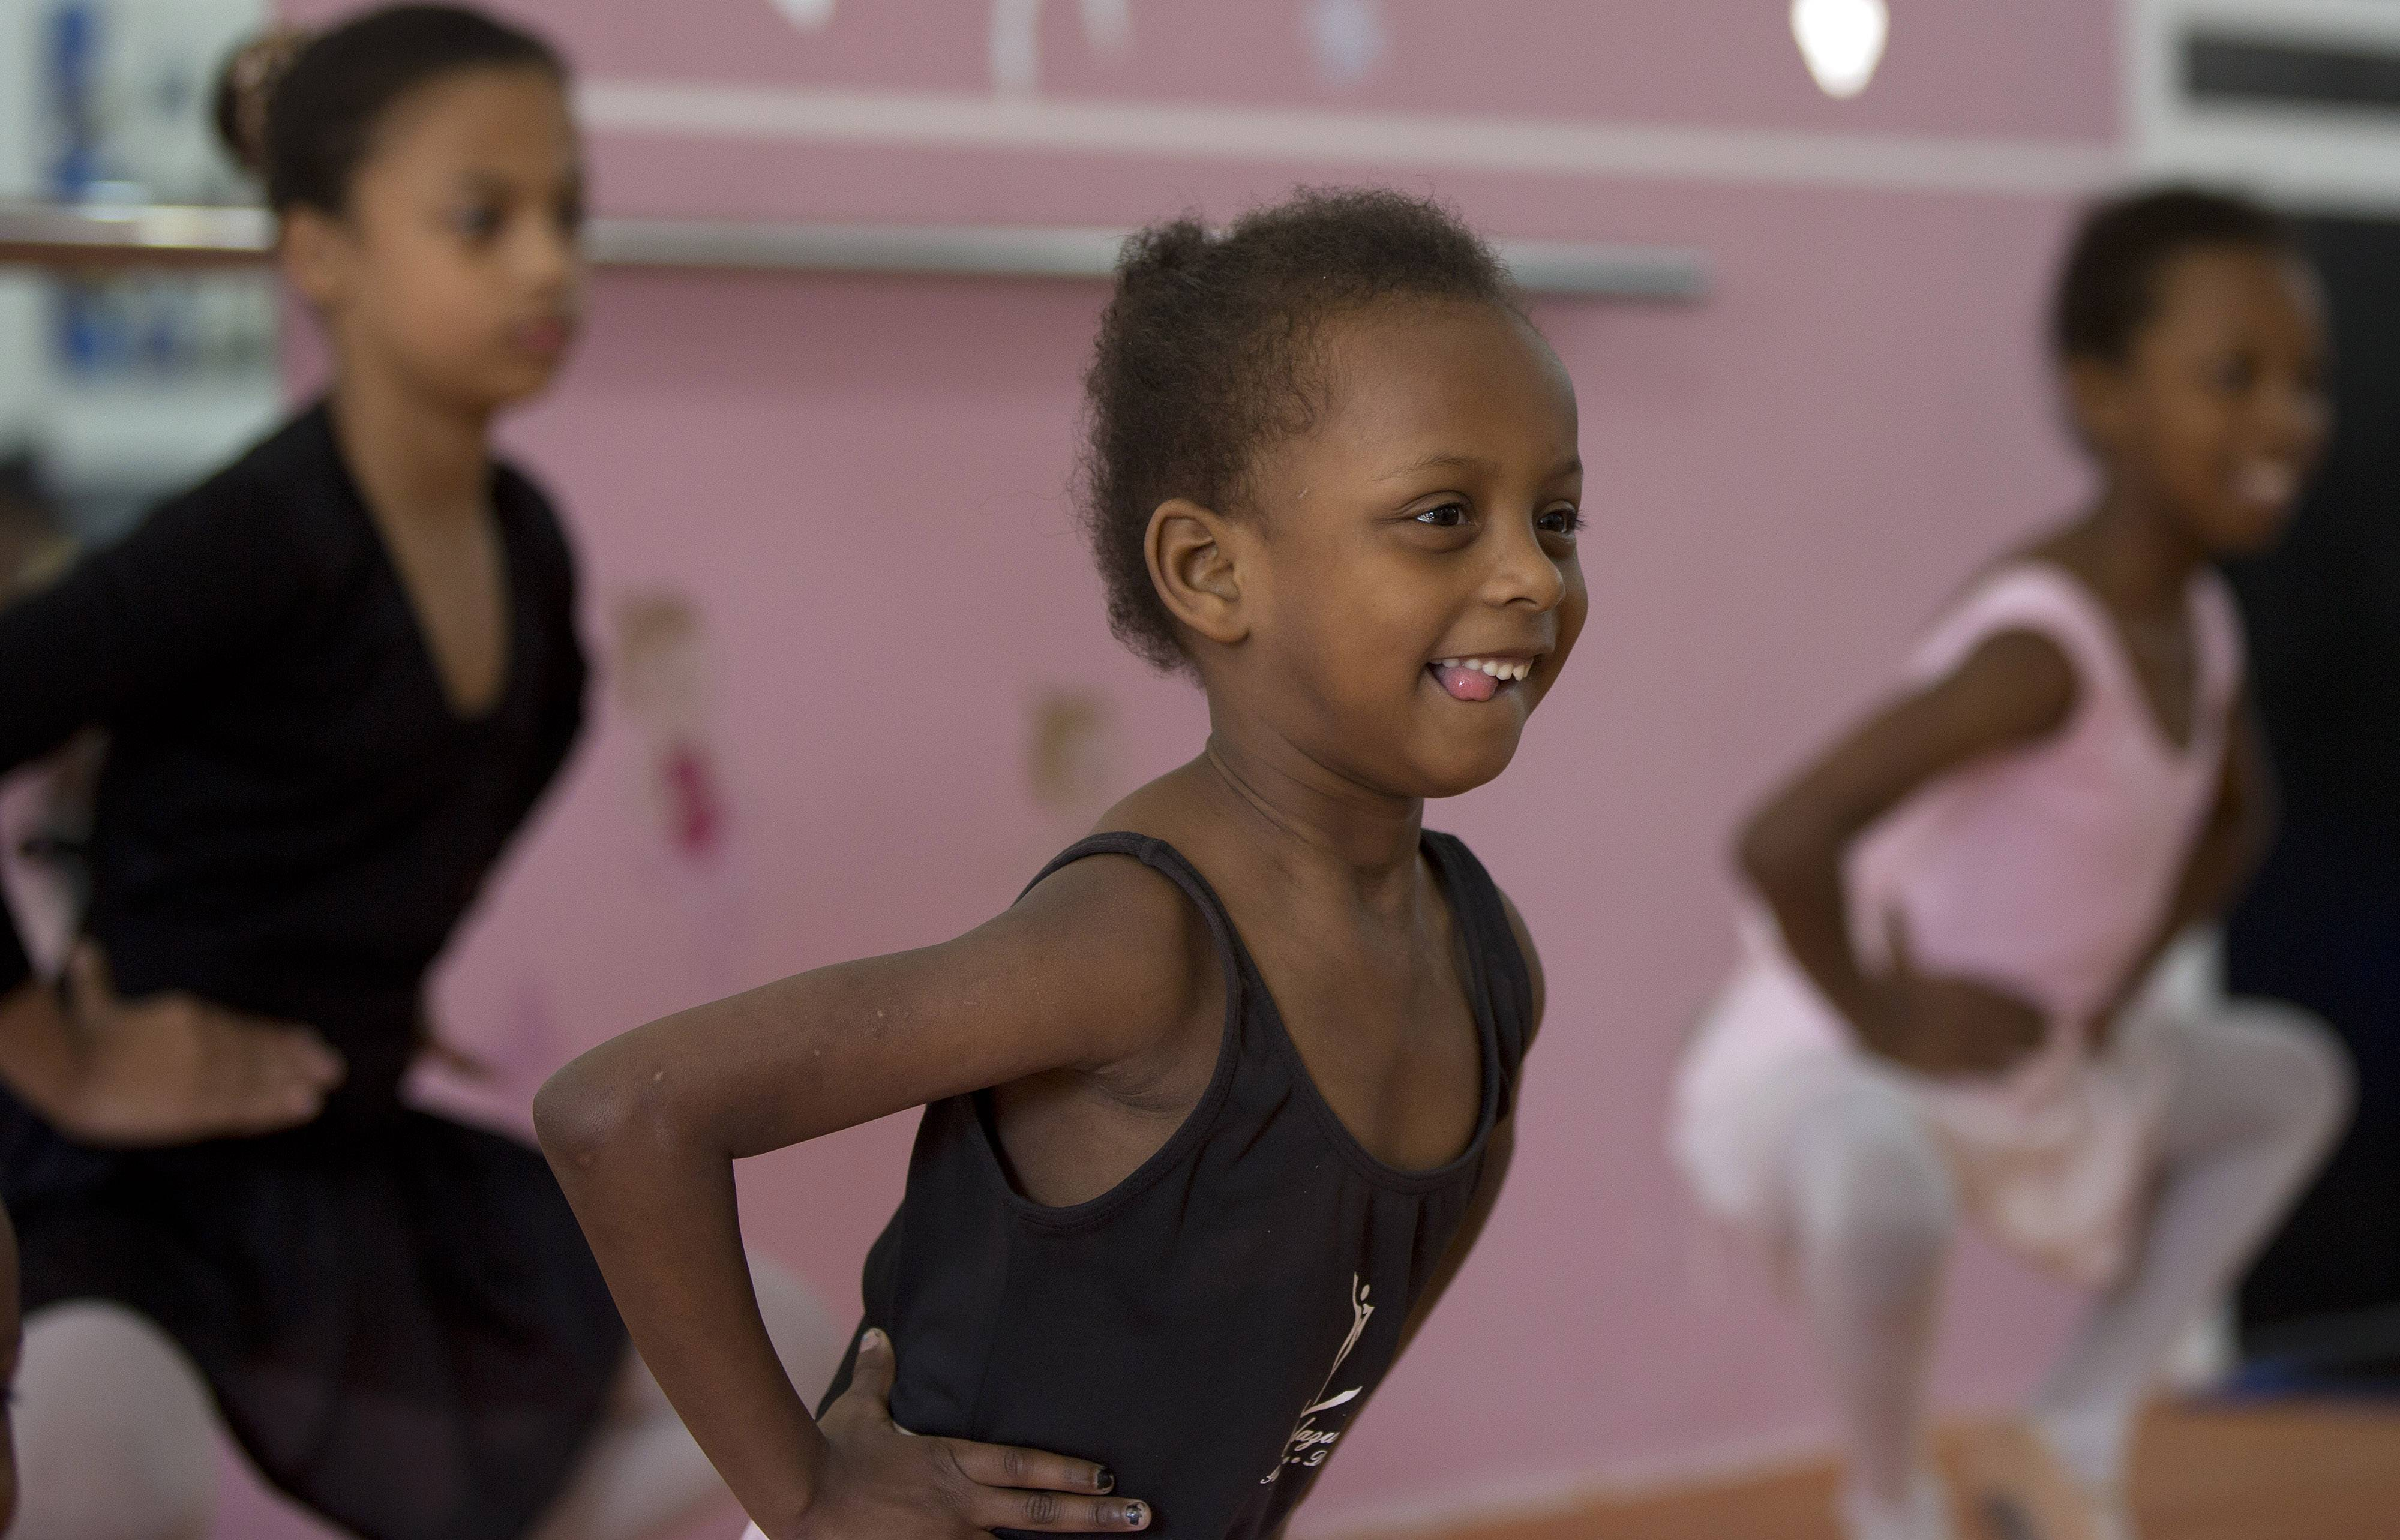 Girls learn ballet at The House of Dreams dance studio in Crackland, one of the roughest neighborhoods of downtown Sao Paulo, Brazil. The young dancers hope to catch the eye of a respected Brazilian ballerina who recruits dozens of disadvantaged girls for an annual workshop.